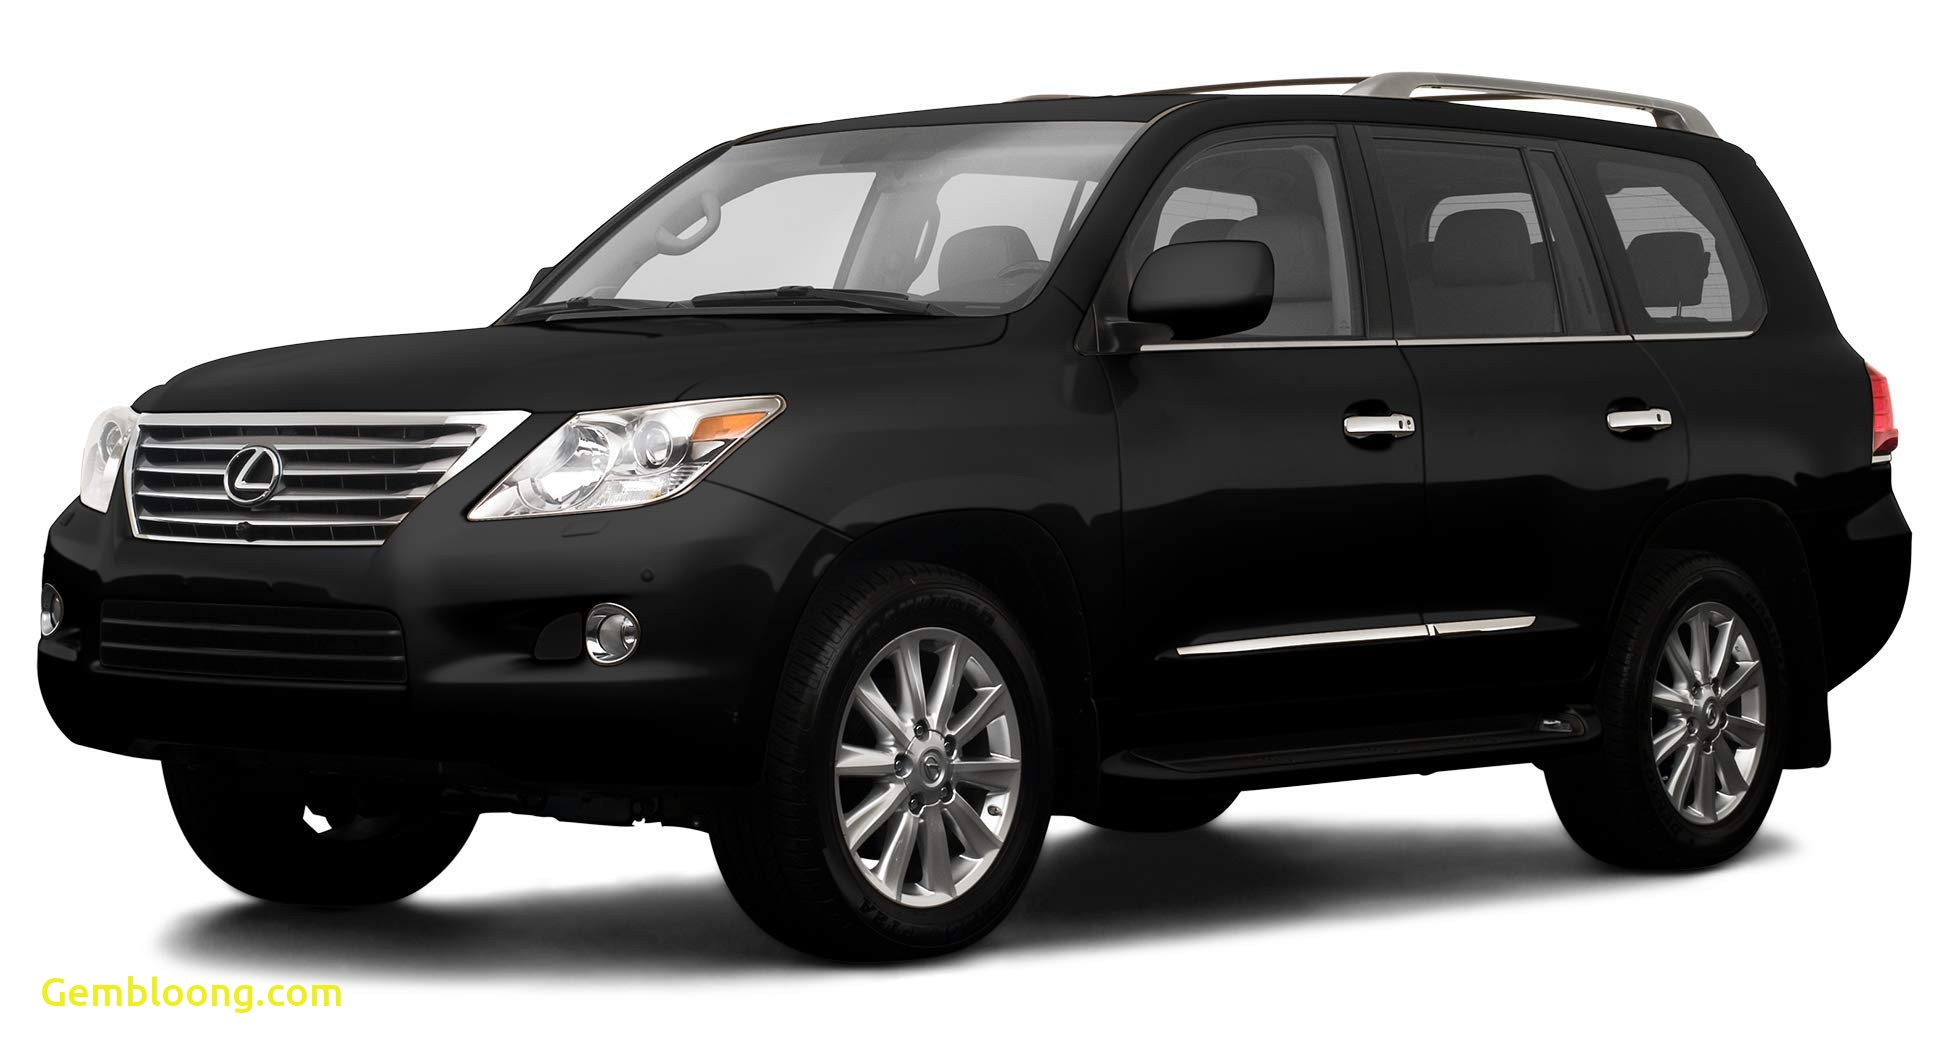 Used Cars for Sale Near Me Under 8500 Awesome Amazon 2008 toyota Land Cruiser Reviews and